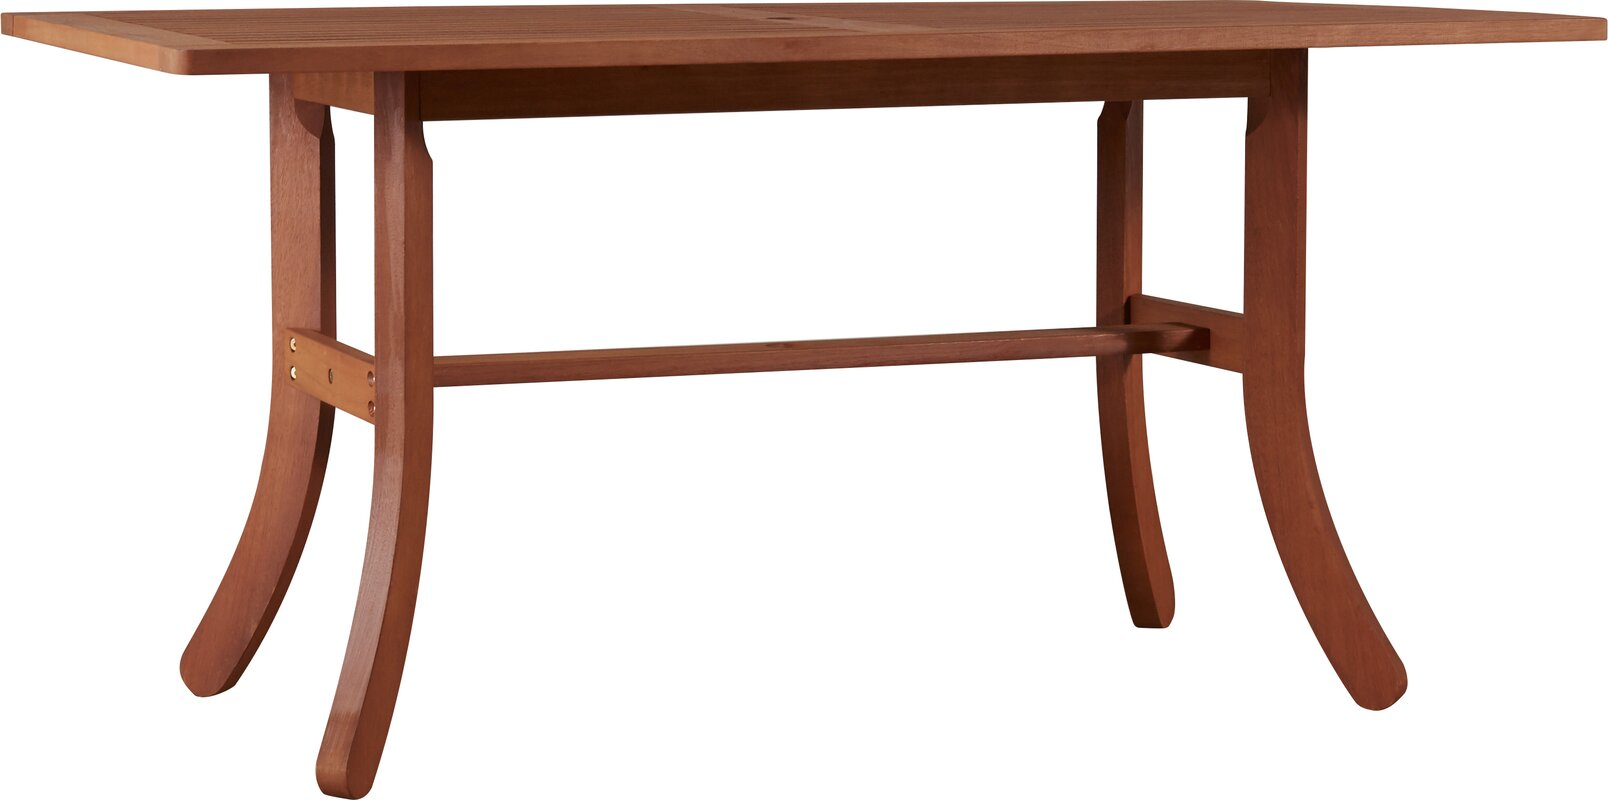 Emerson table west